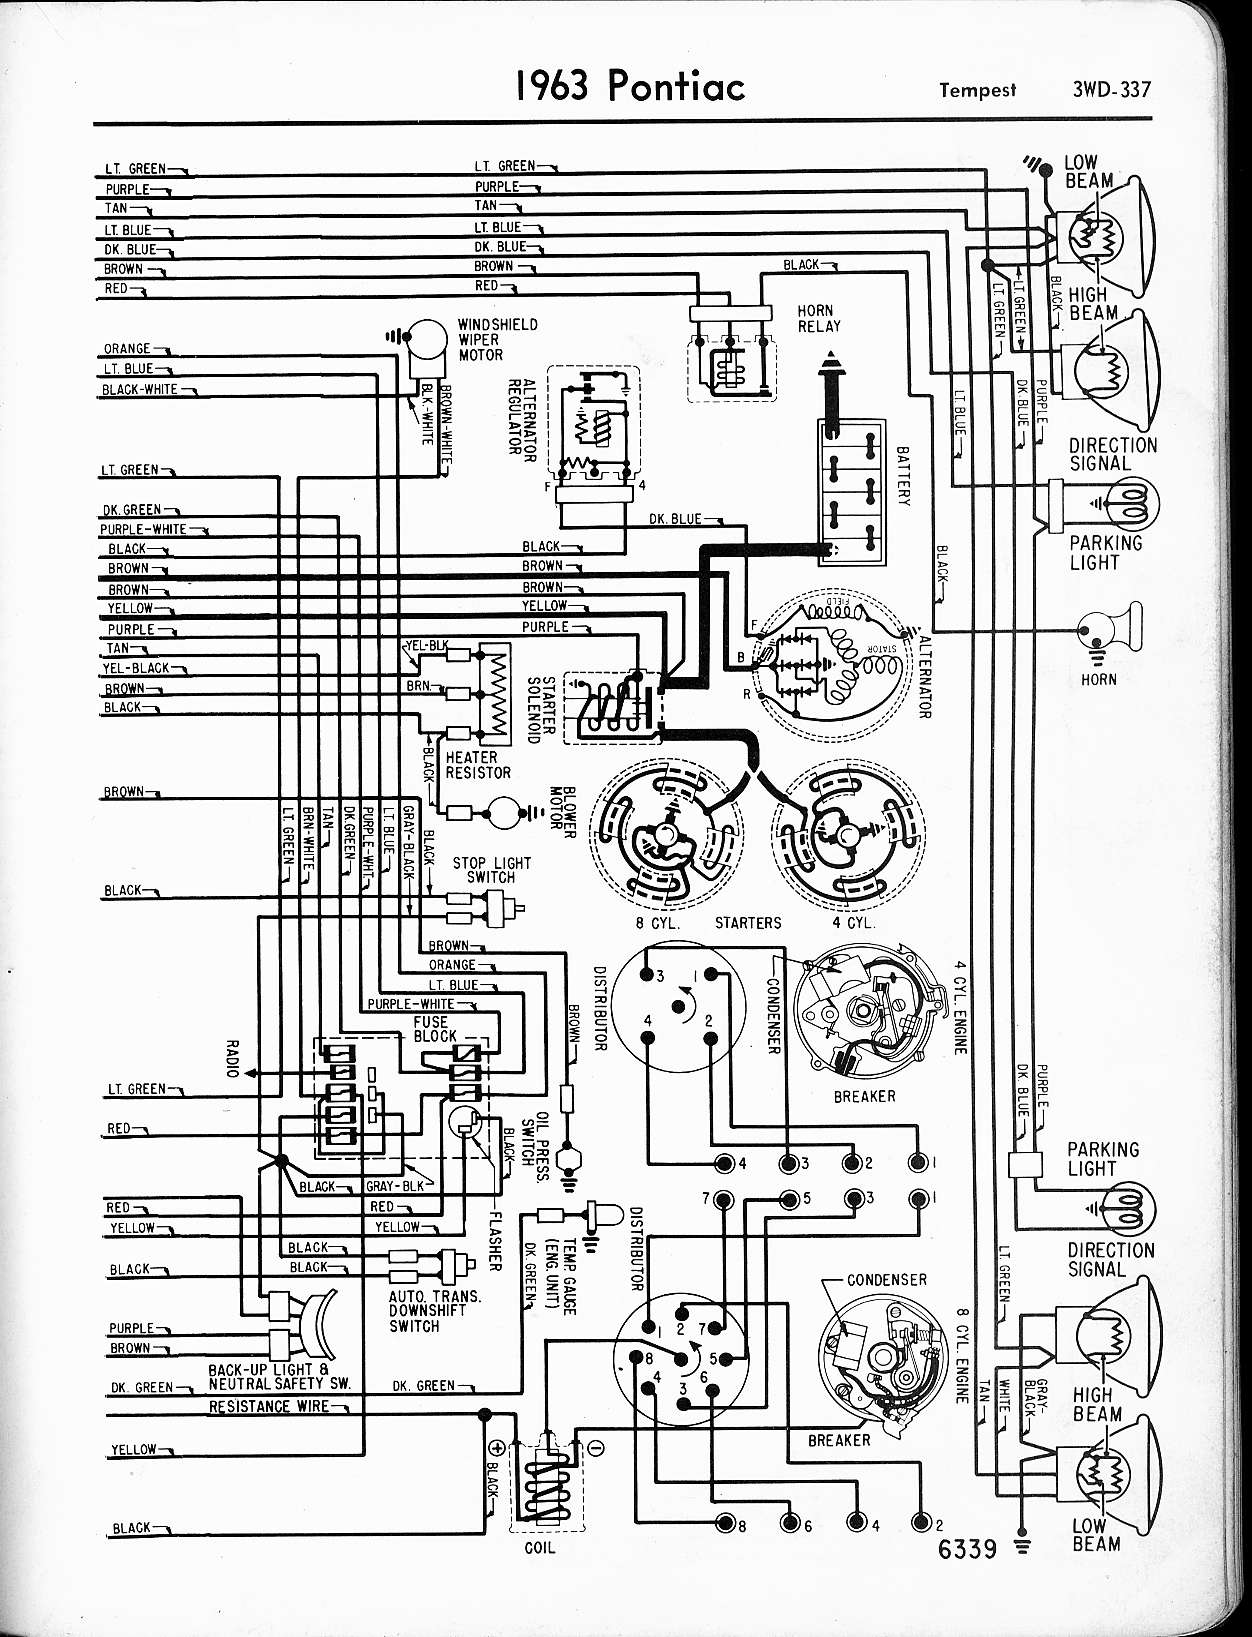 1963 Pontiac Wiring Diagram Manual Guide 64 Impala Starter 1957 1965 Rh Oldcarmanualproject Com Grand Am Prix